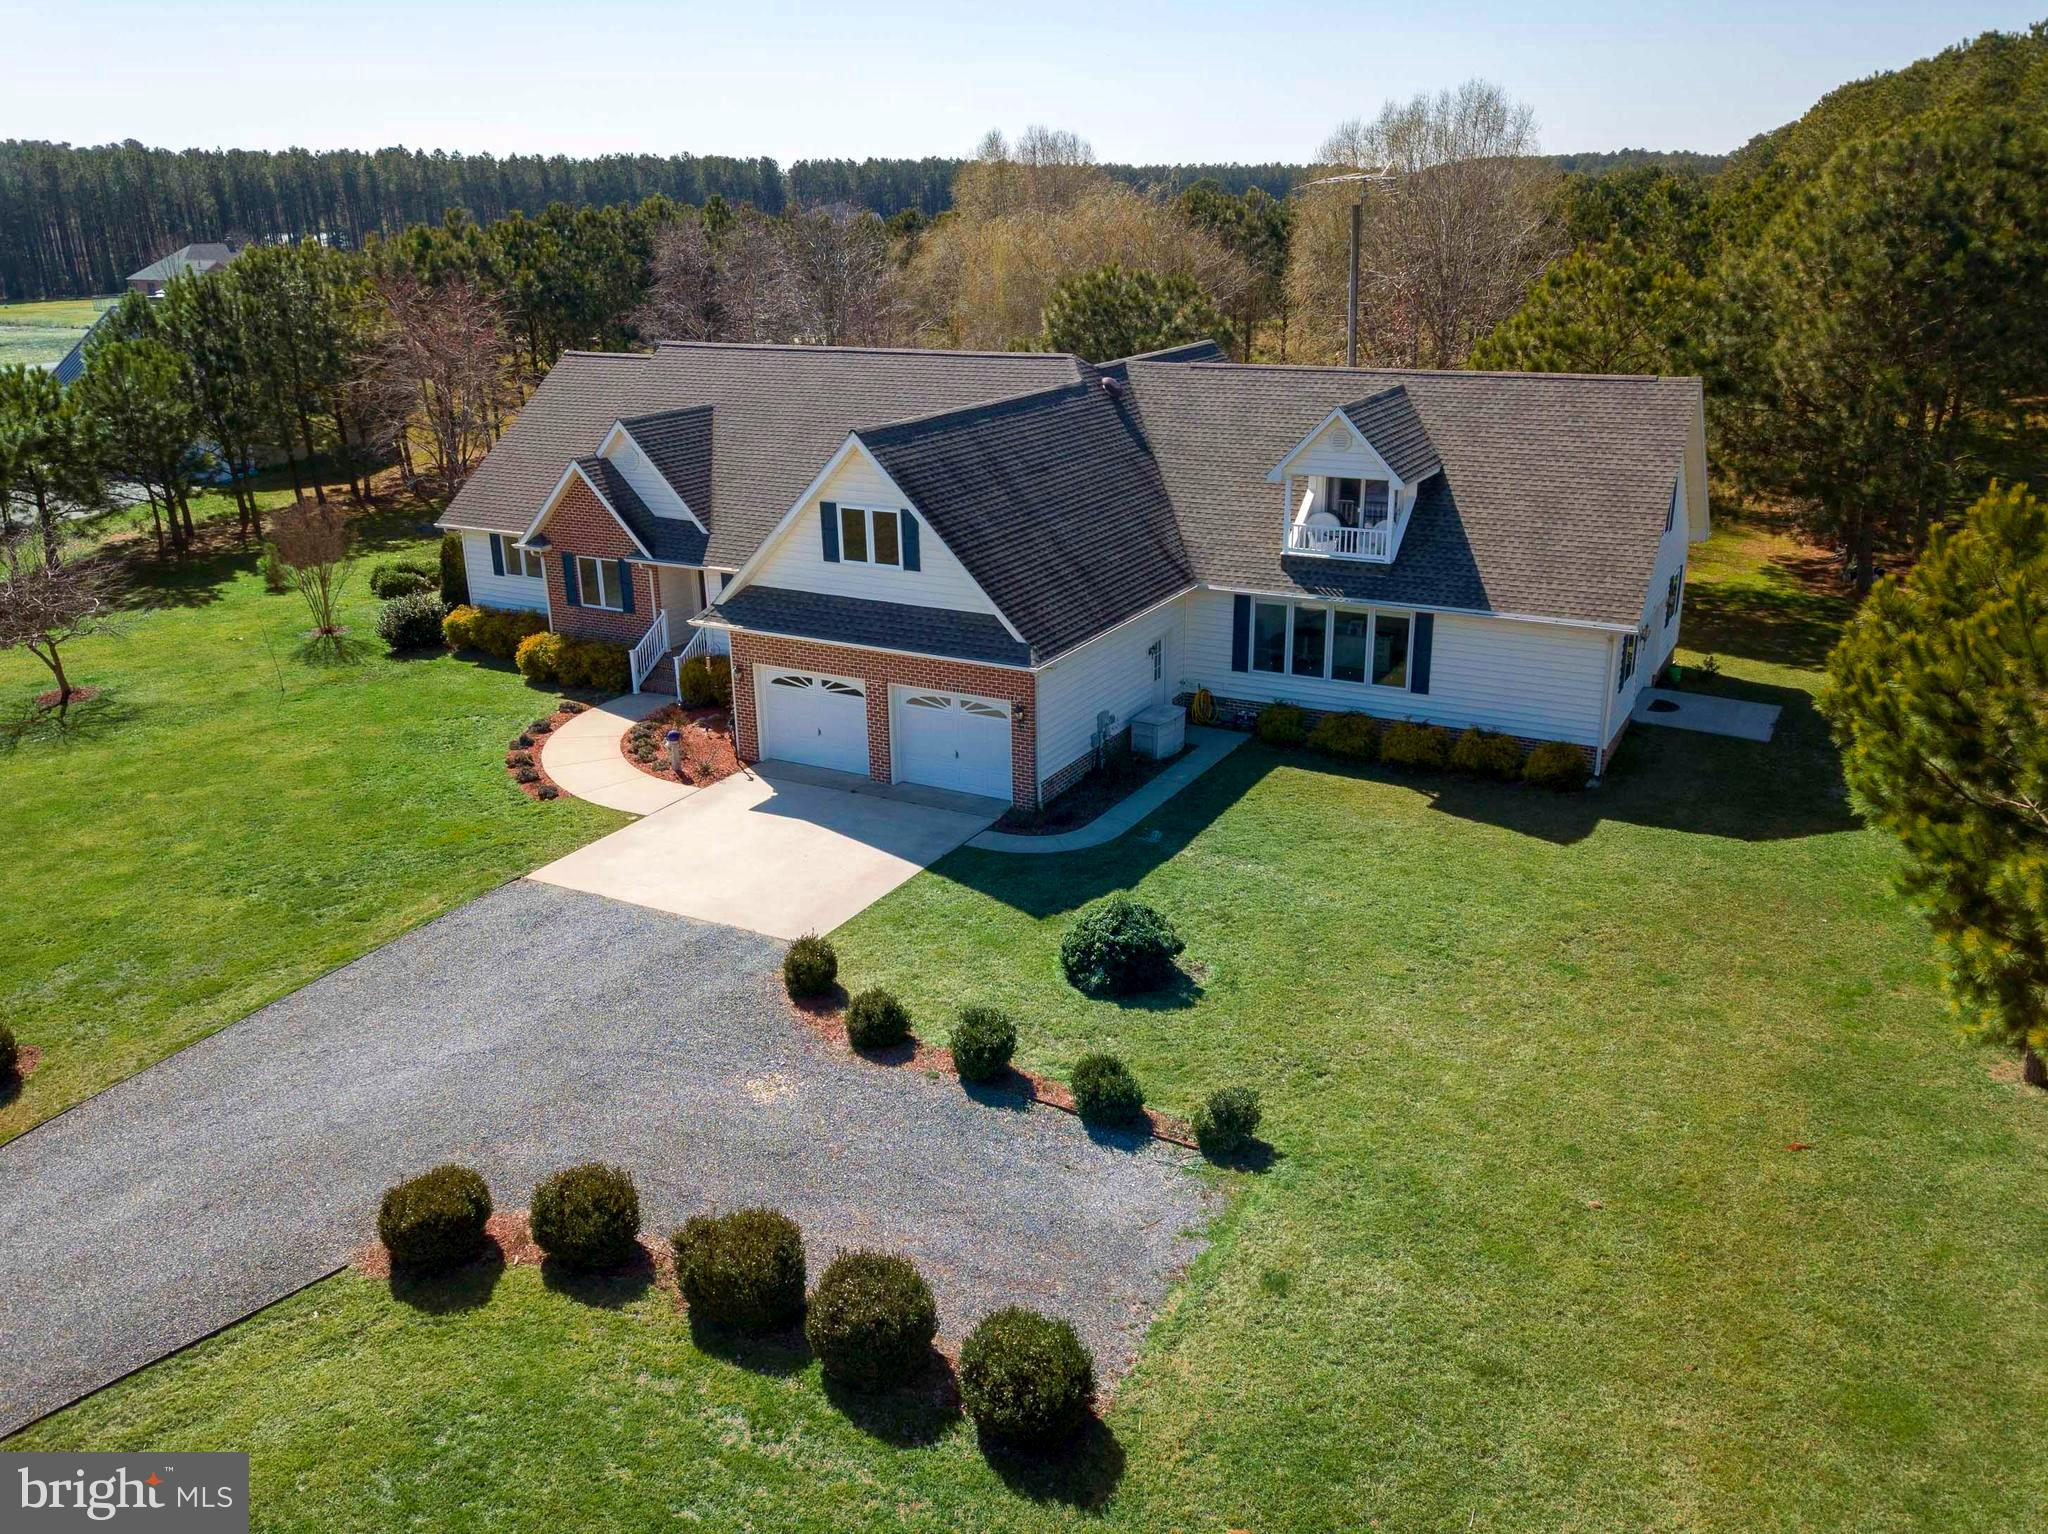 Arguably one of the nicest Waterview Homes on the market!  3/4BR, 2.5BA, Kitchen w/Granite tops and Island, Office, Den, Living Room w/gas FP, Second Floor Balcony, 2 Car Garage, attached shop, and large Cedar Deck on the back all on 1.85 acres.  Tons of Storage.  The amenities are truly too numerous to mention them all.  Come check it out, you won't be disappointed!